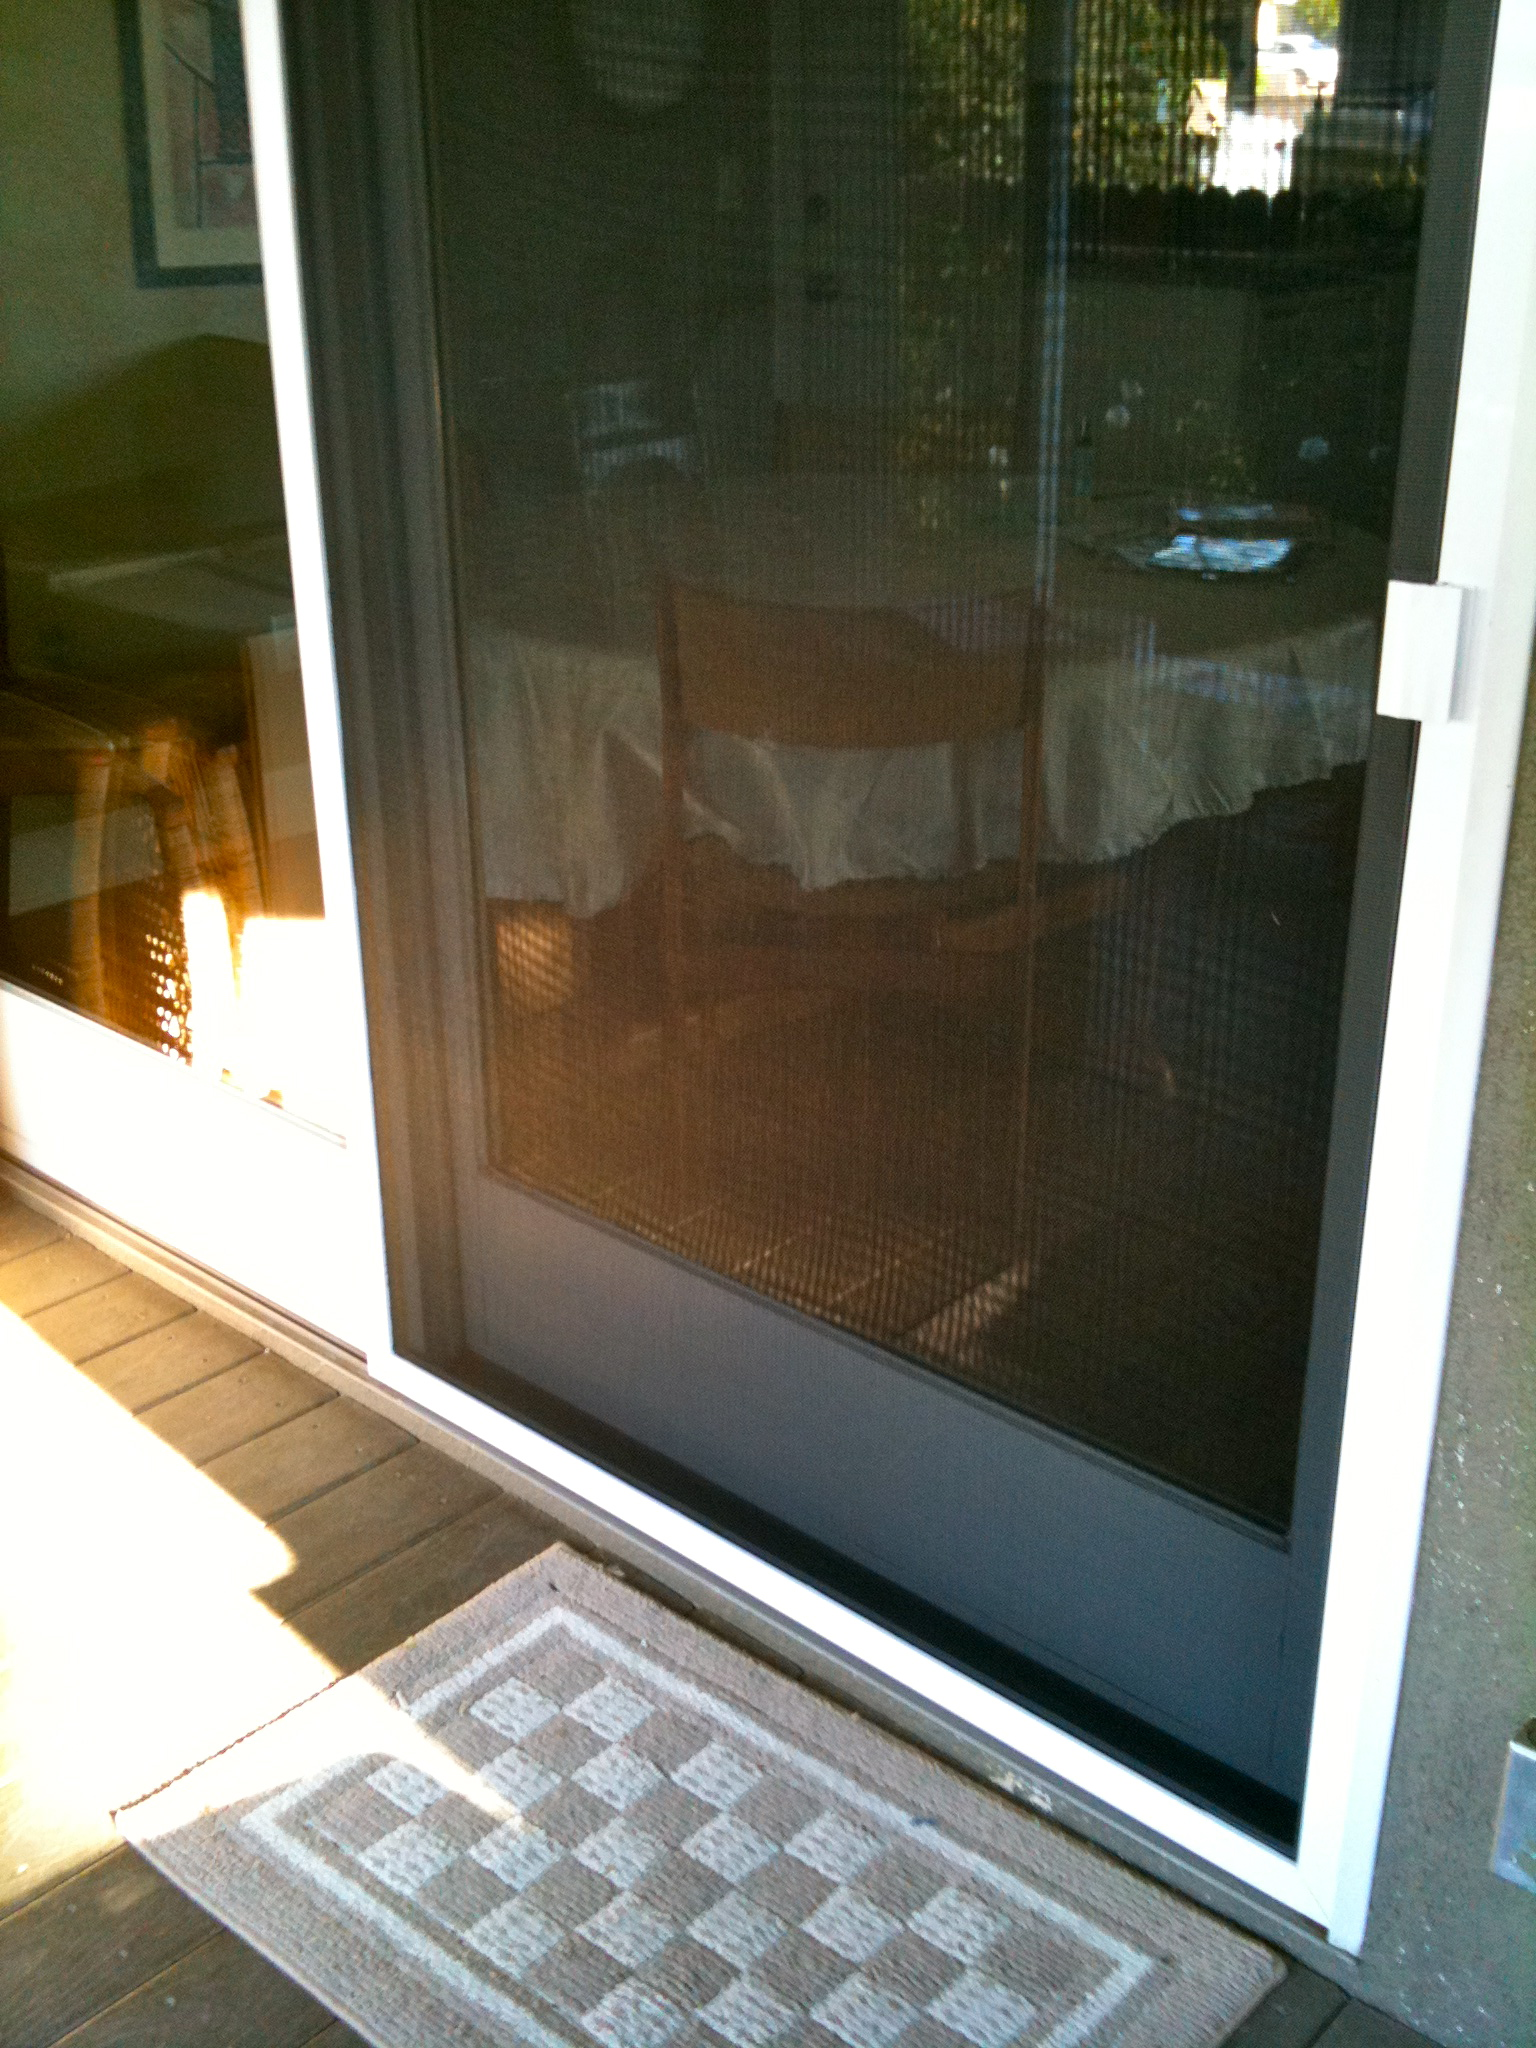 Calabasas screen doors screen door repair replace Screen door replacement